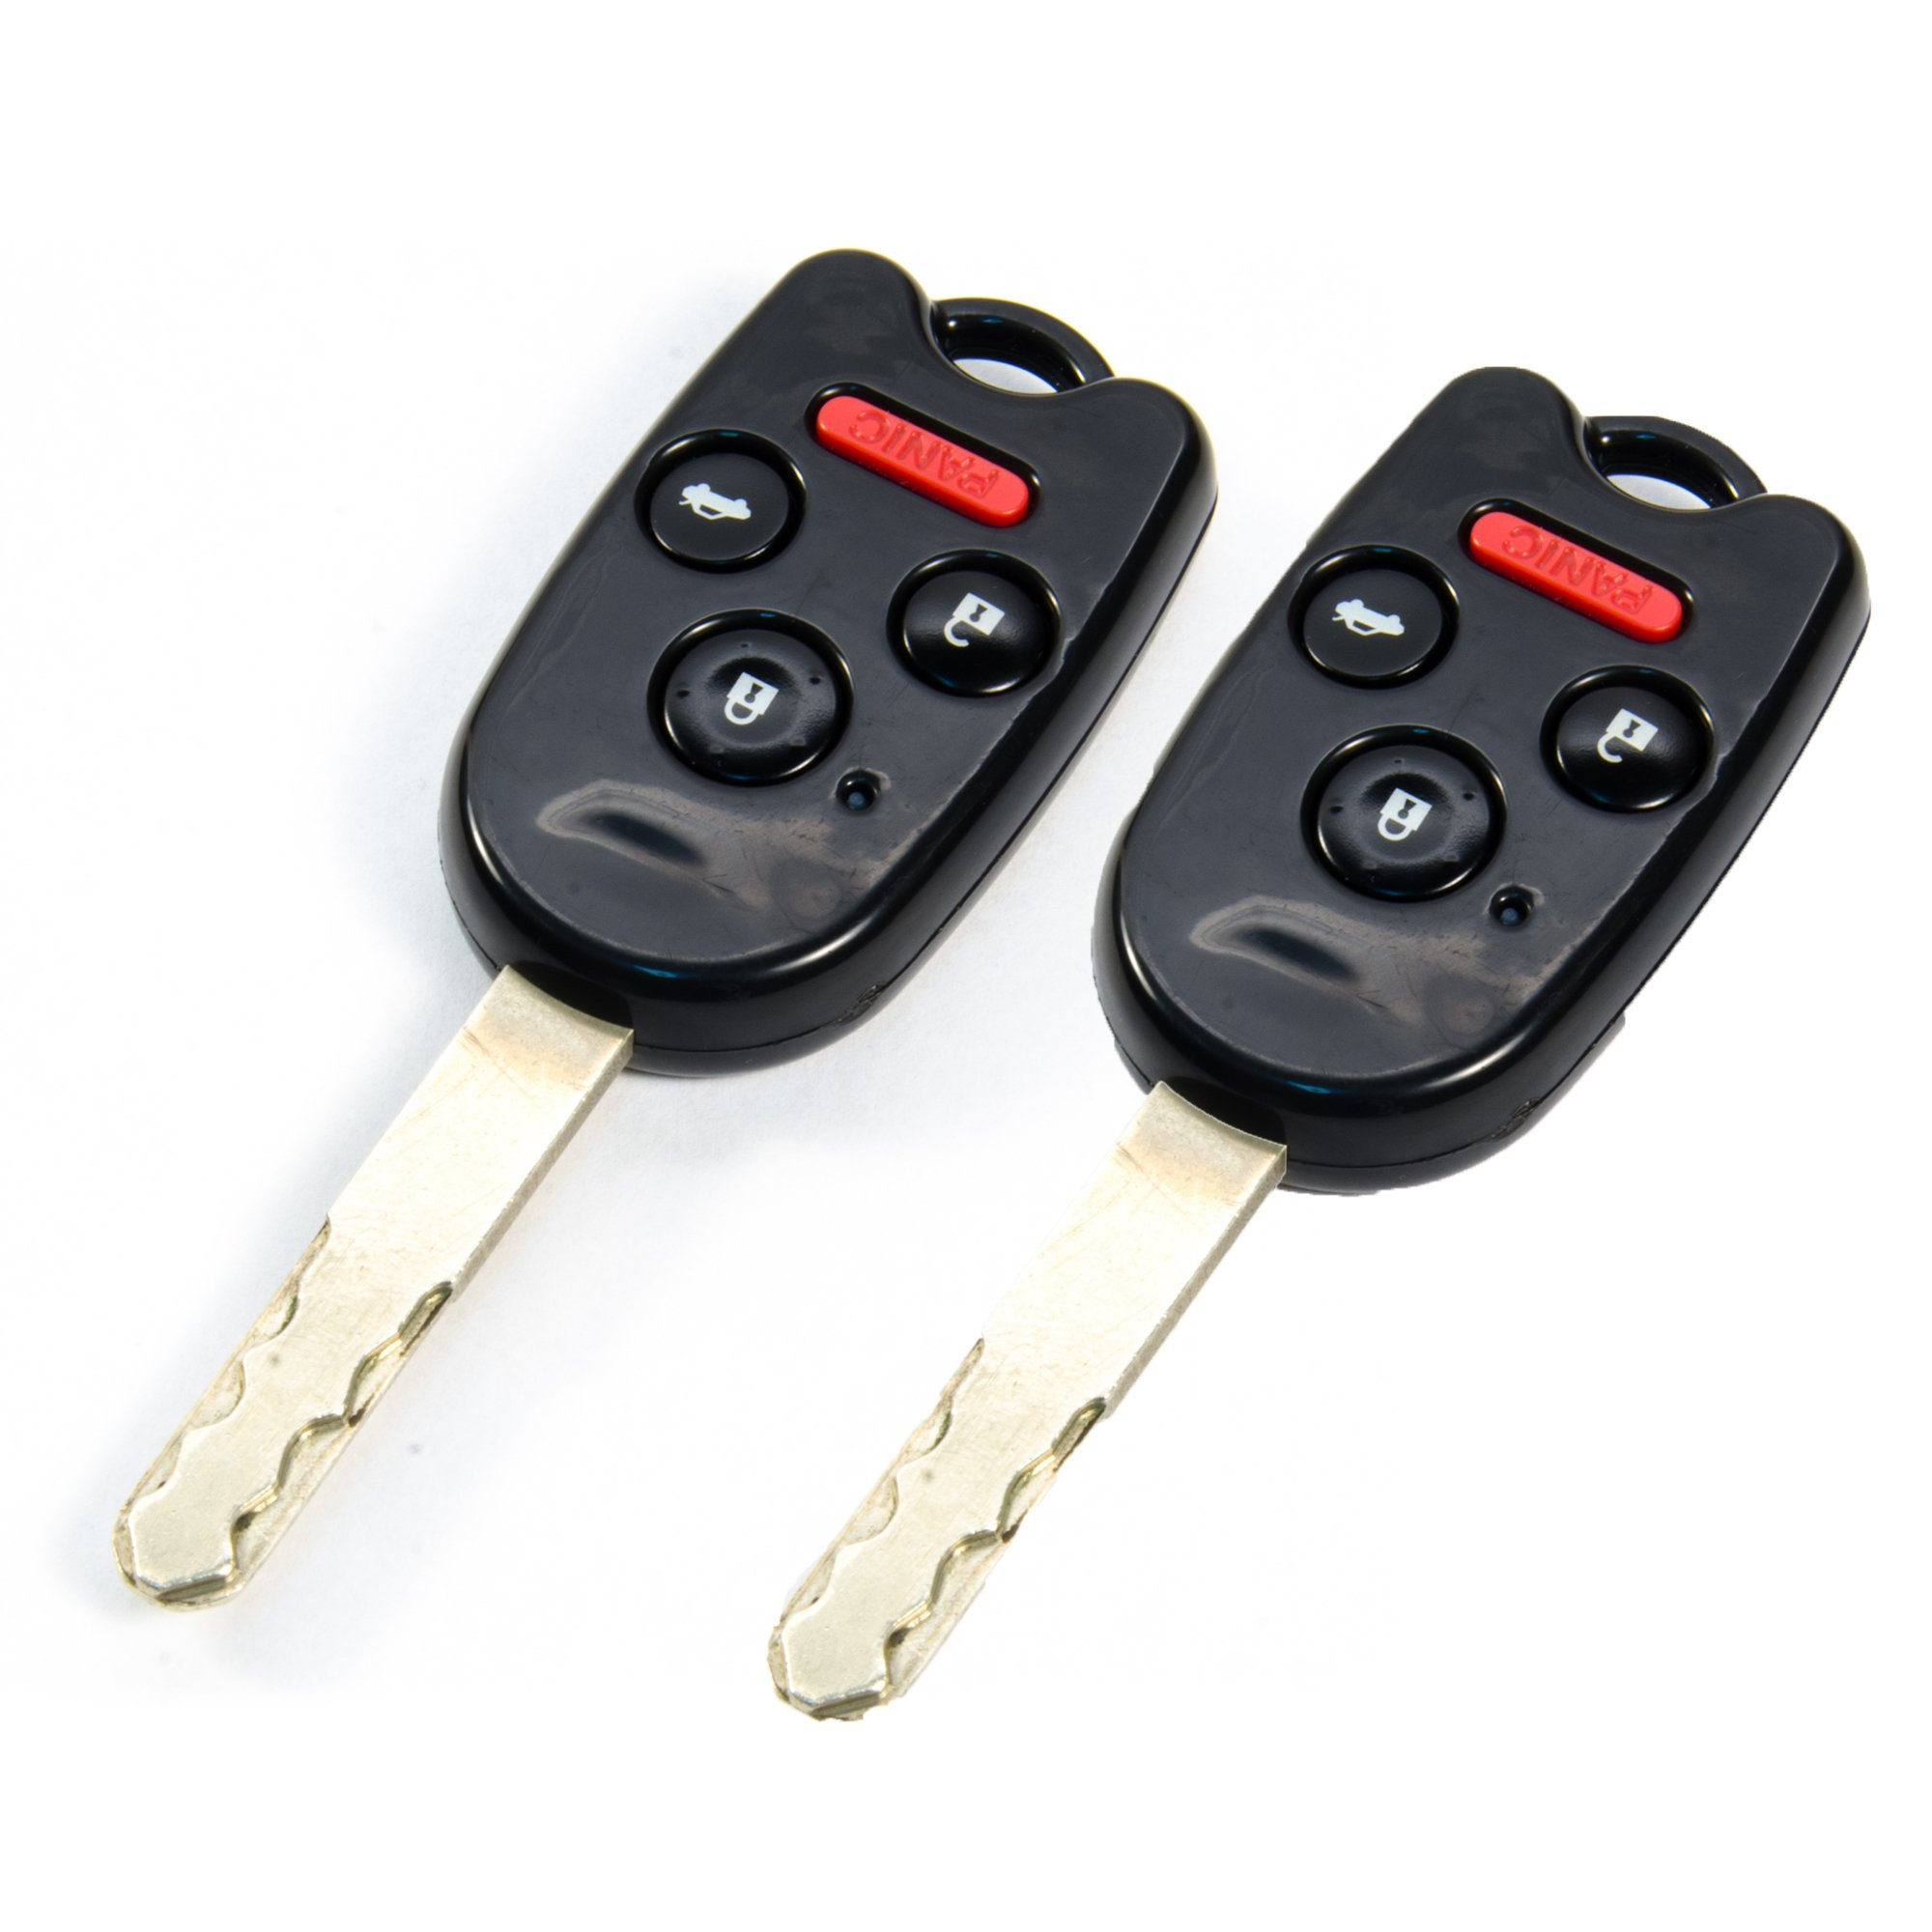 Ridgeline Civic N5F-S0084A STAUBER Best Key Shell Replacement for Honda Accord KR55WK49308 NO Locksmith Required Using Your Old Key and chip! N5F-A05TAA and CR-V Green